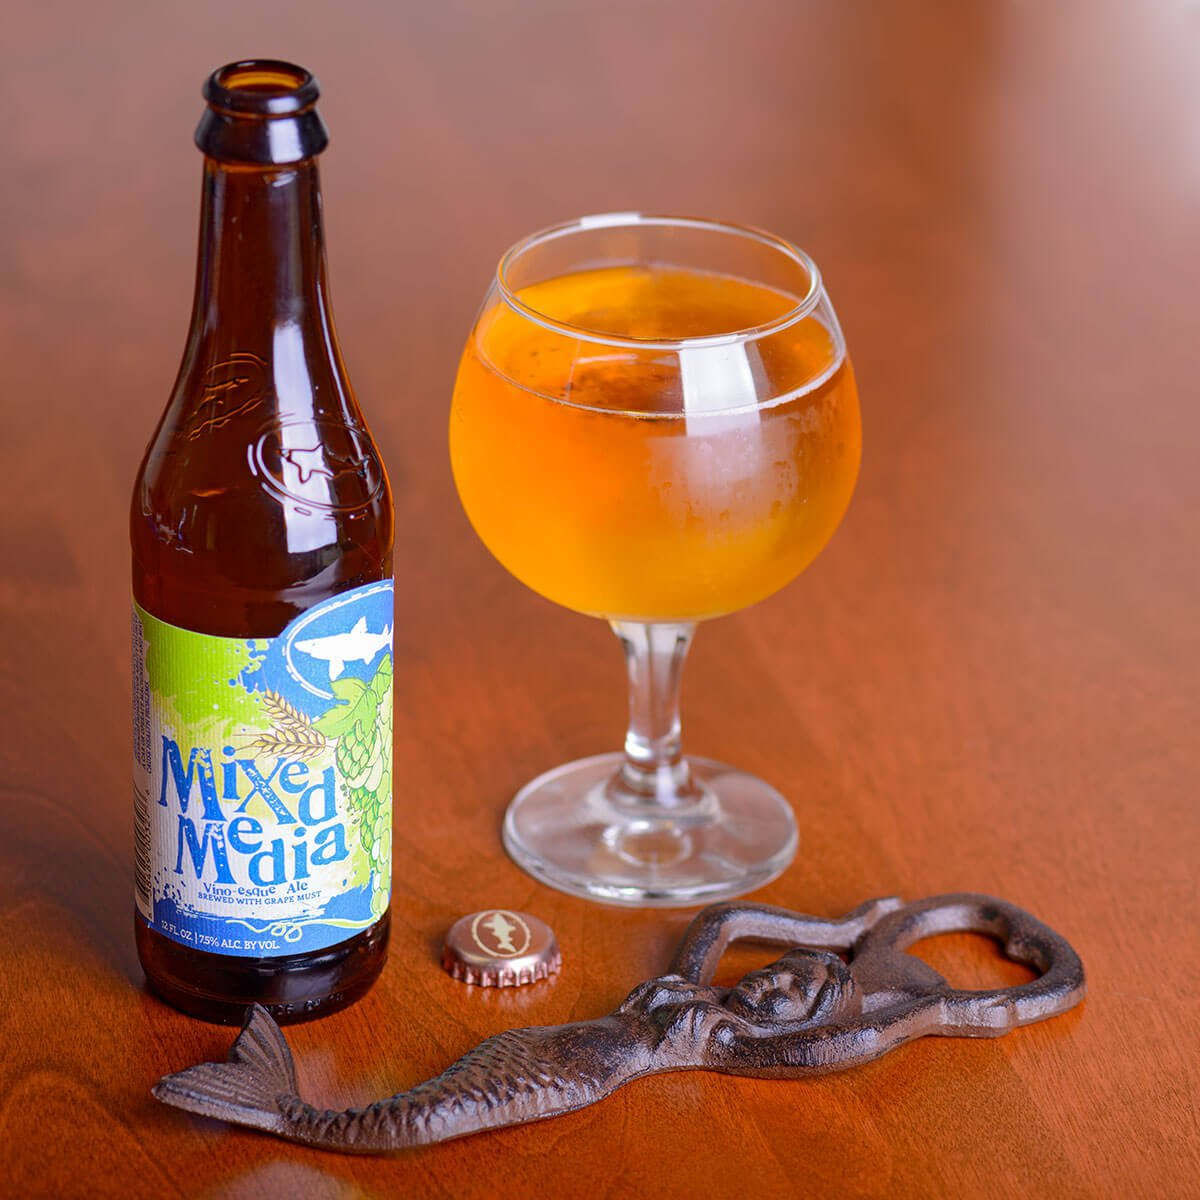 Mixed Media, a Fruit Beer by Dogfish Head Craft Brewery